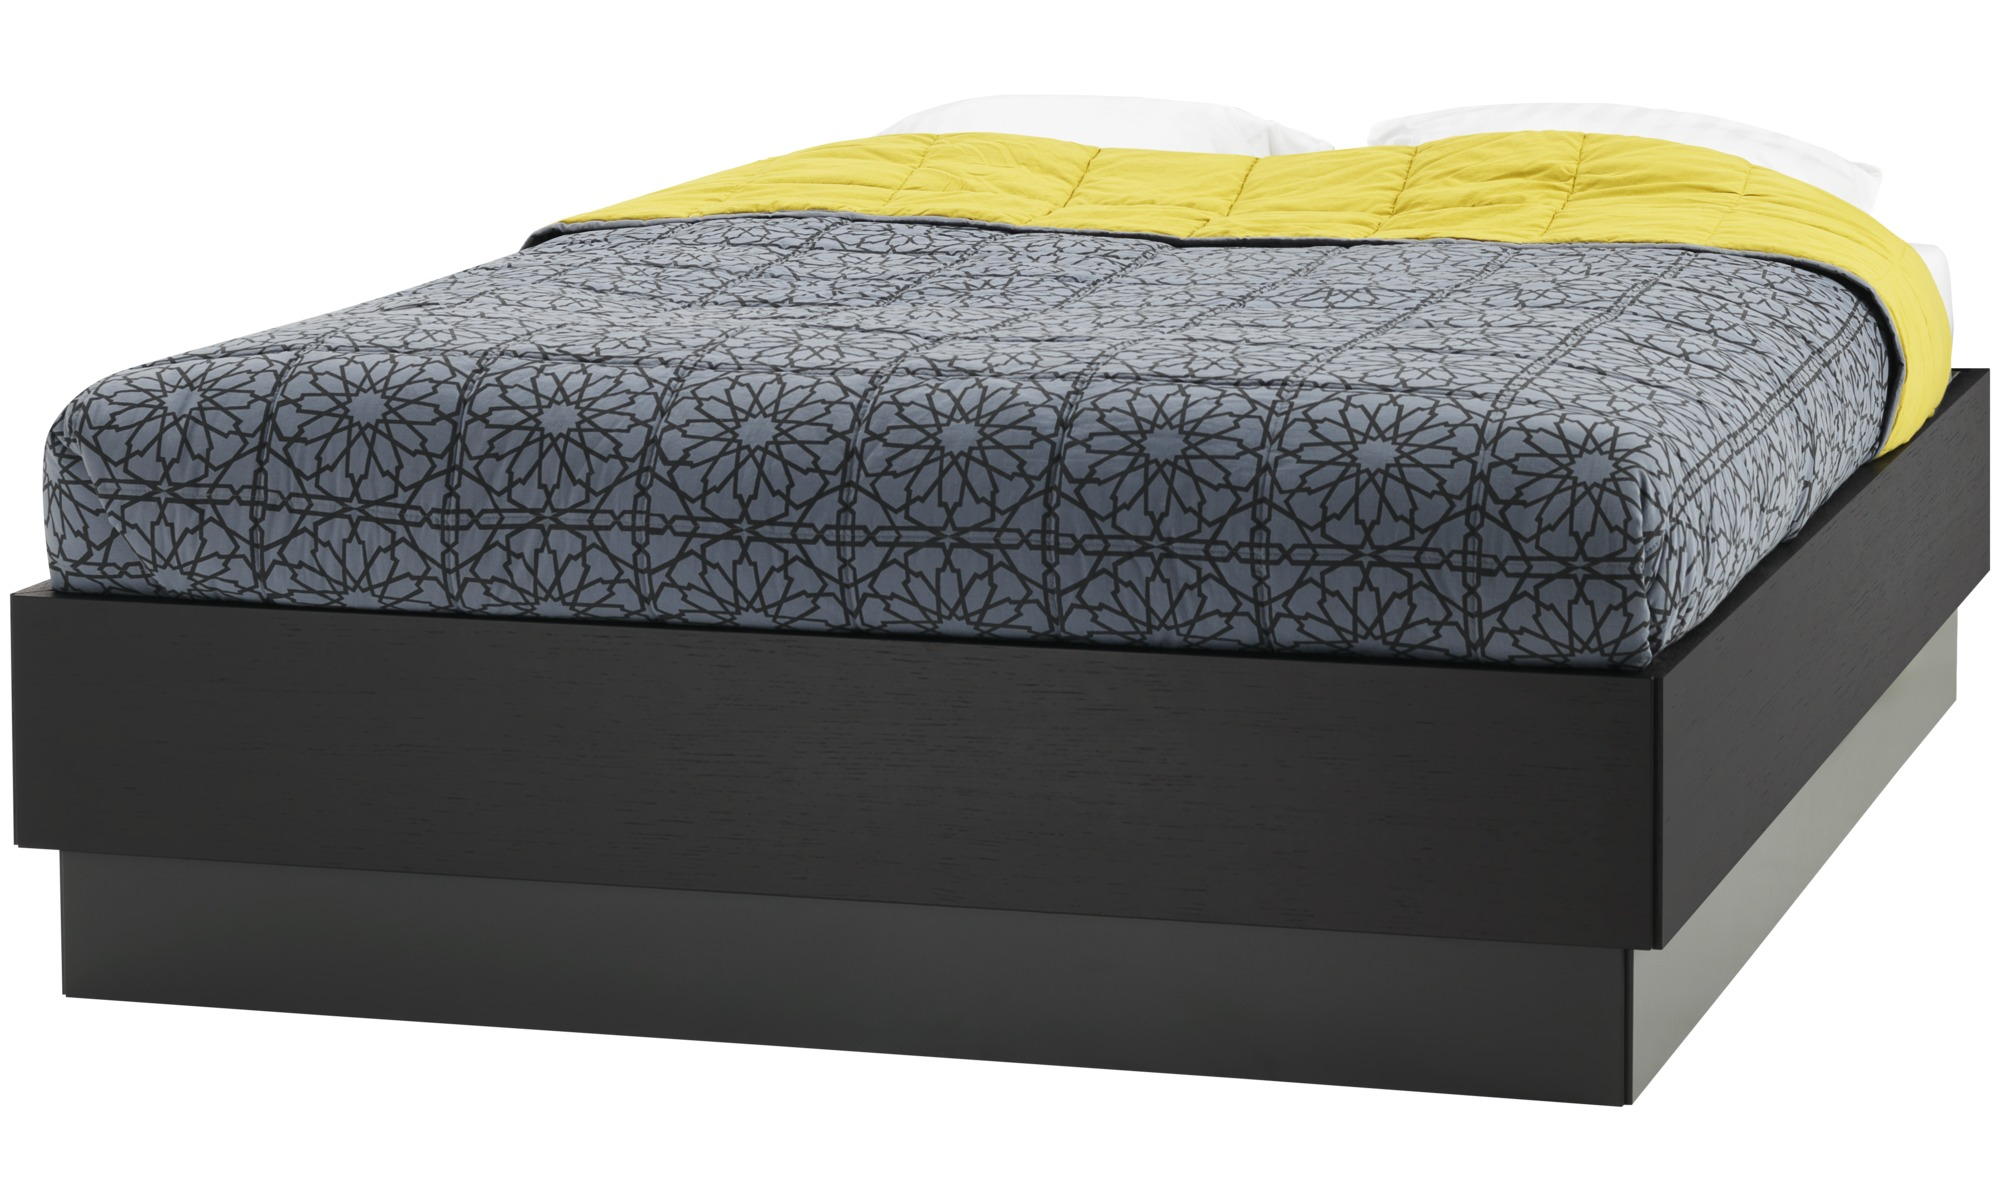 lugano storage bed with lift up frame and slats excl mattress